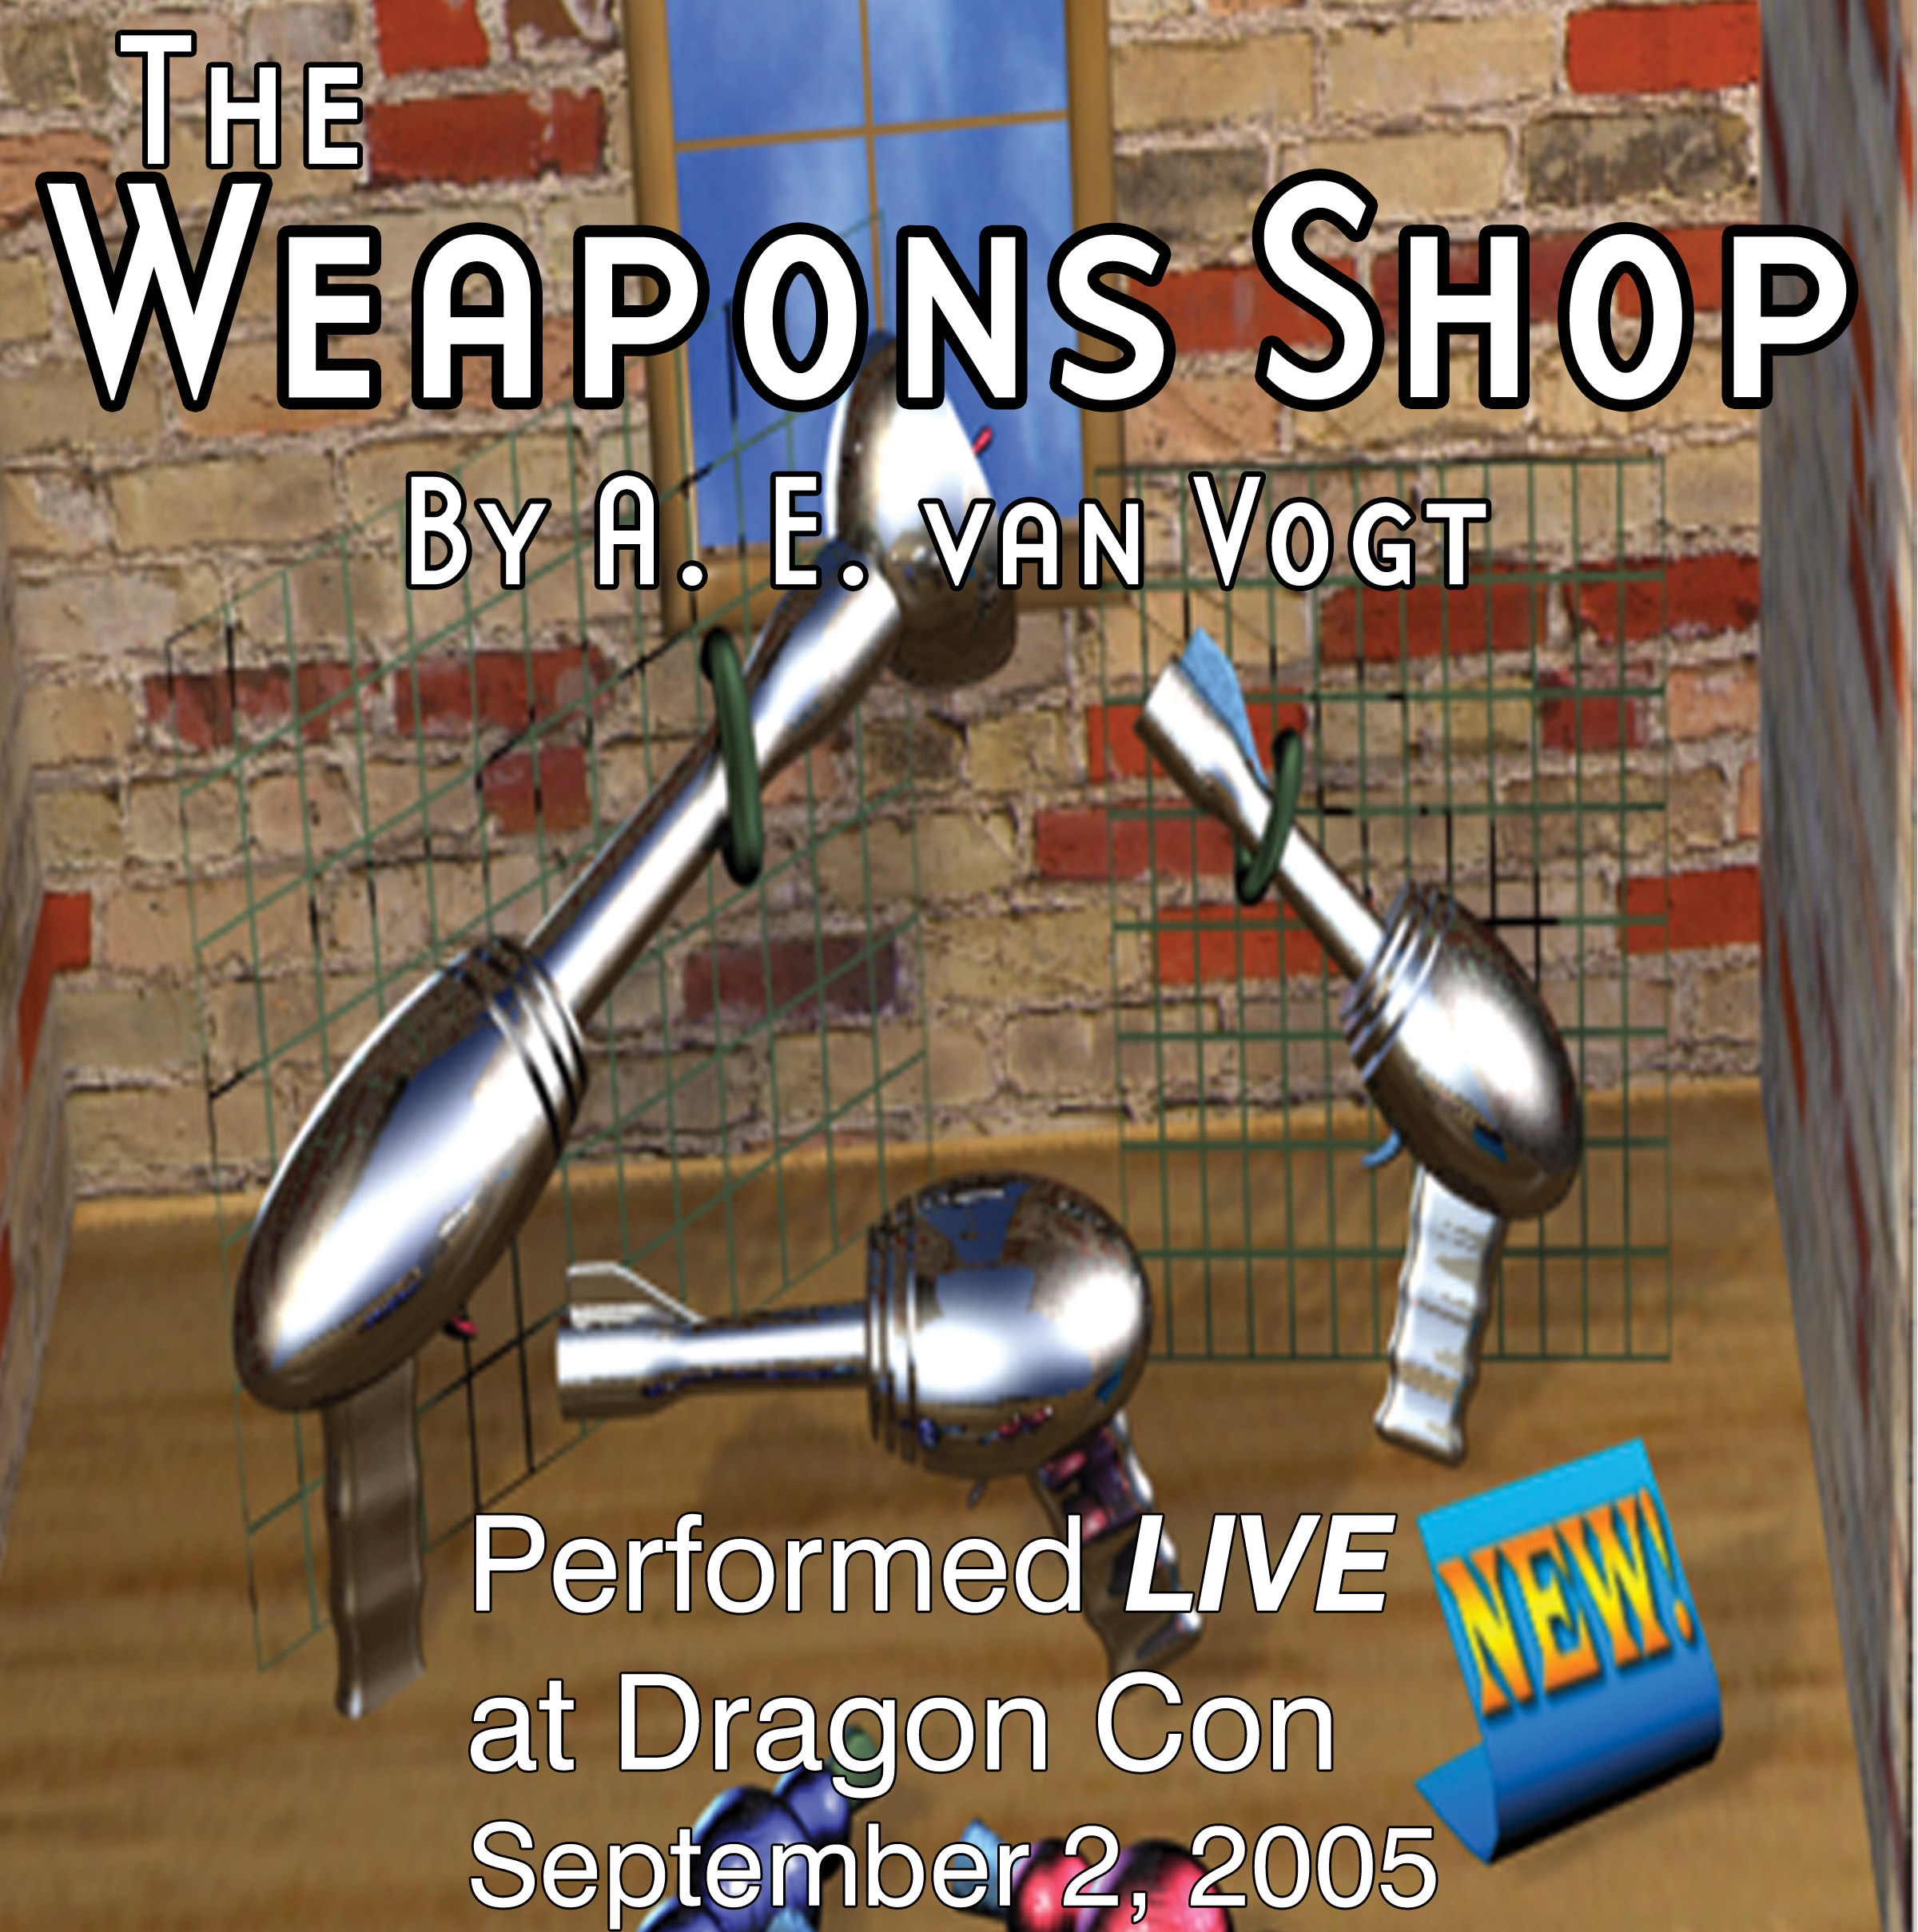 The Weapons Shop